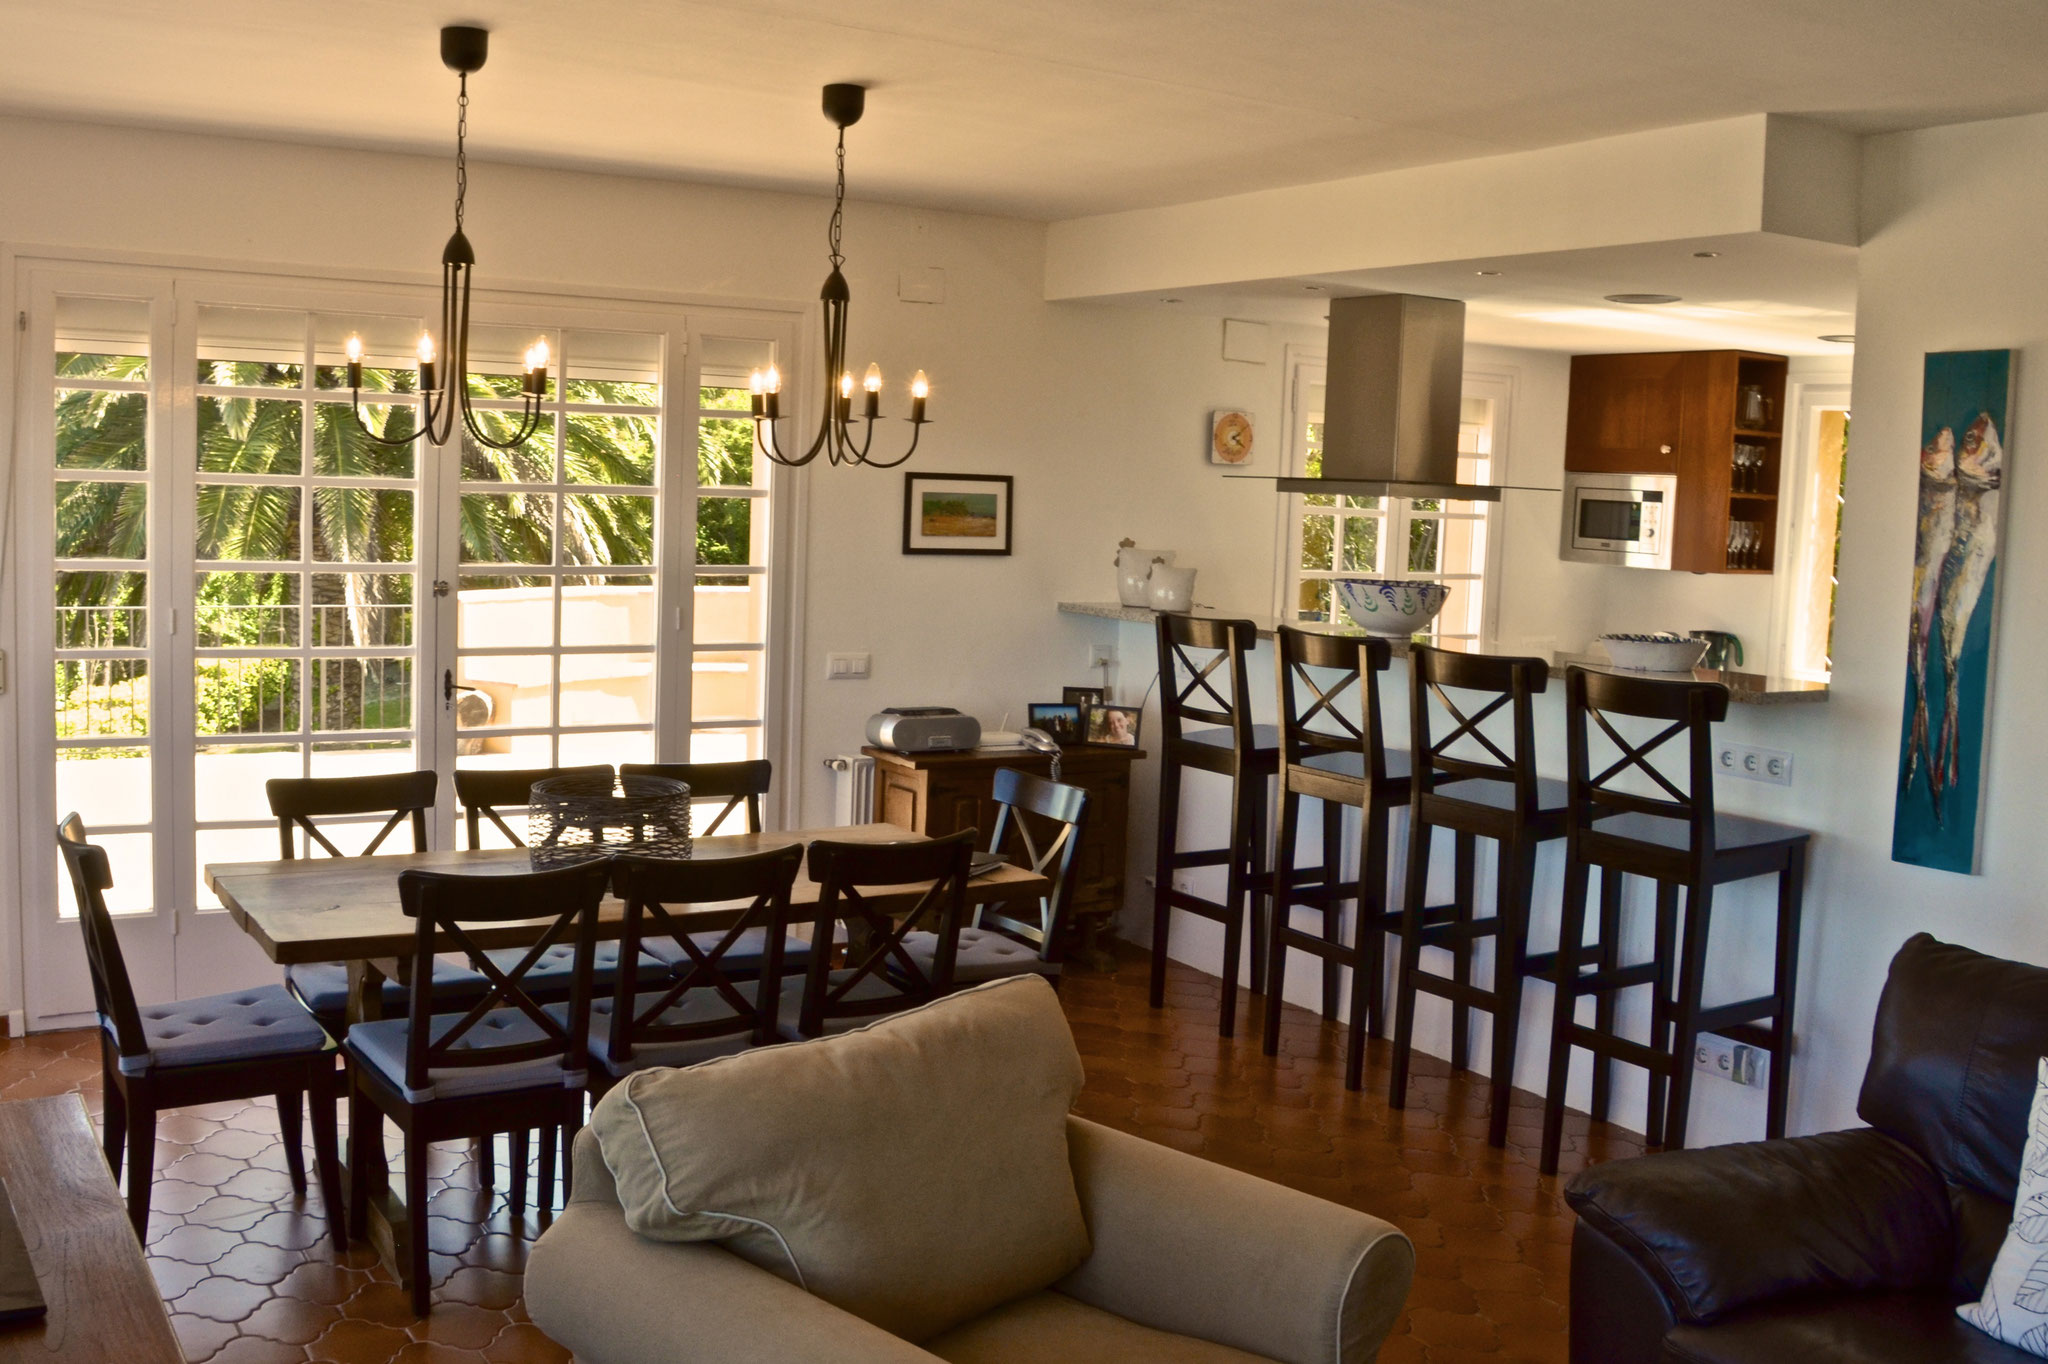 Dining and sitting area